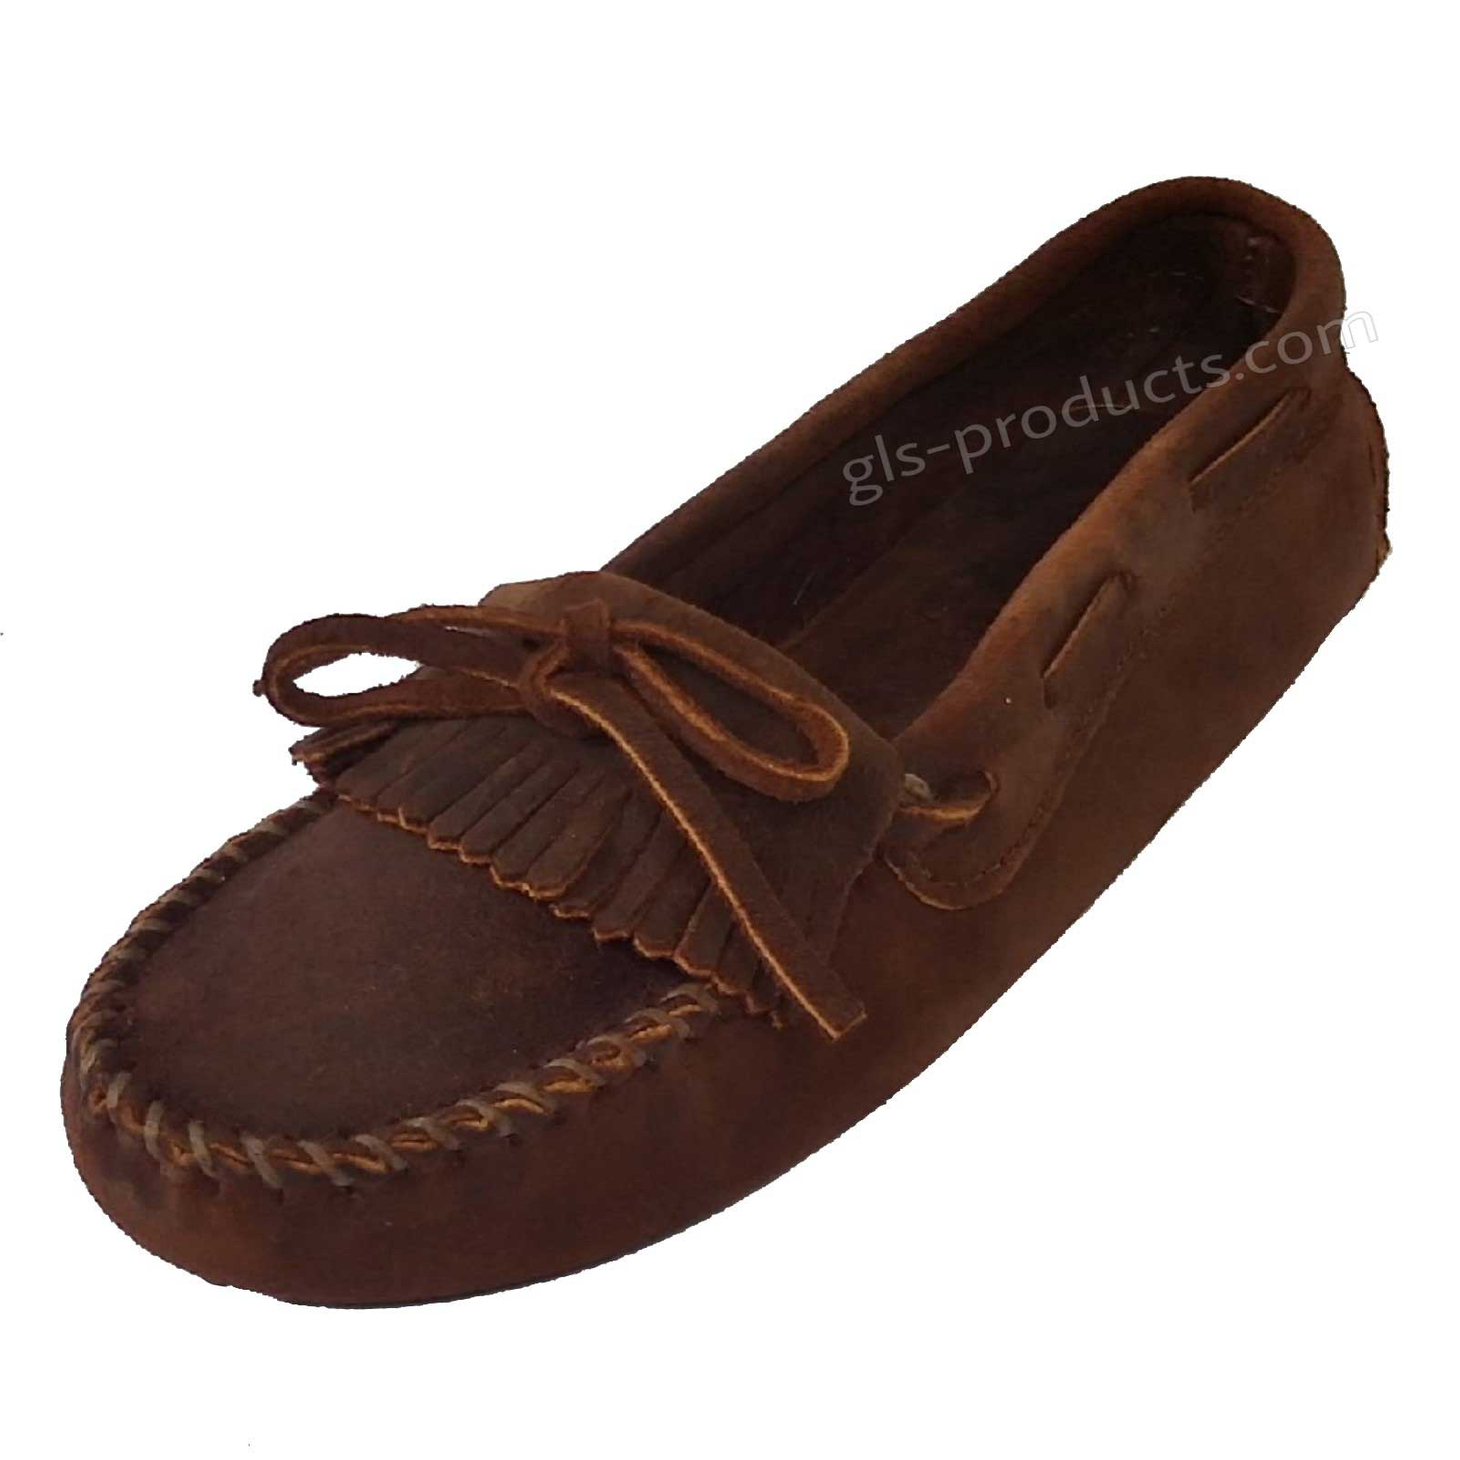 Minnetonka Kilty Driving Moc --- SALE